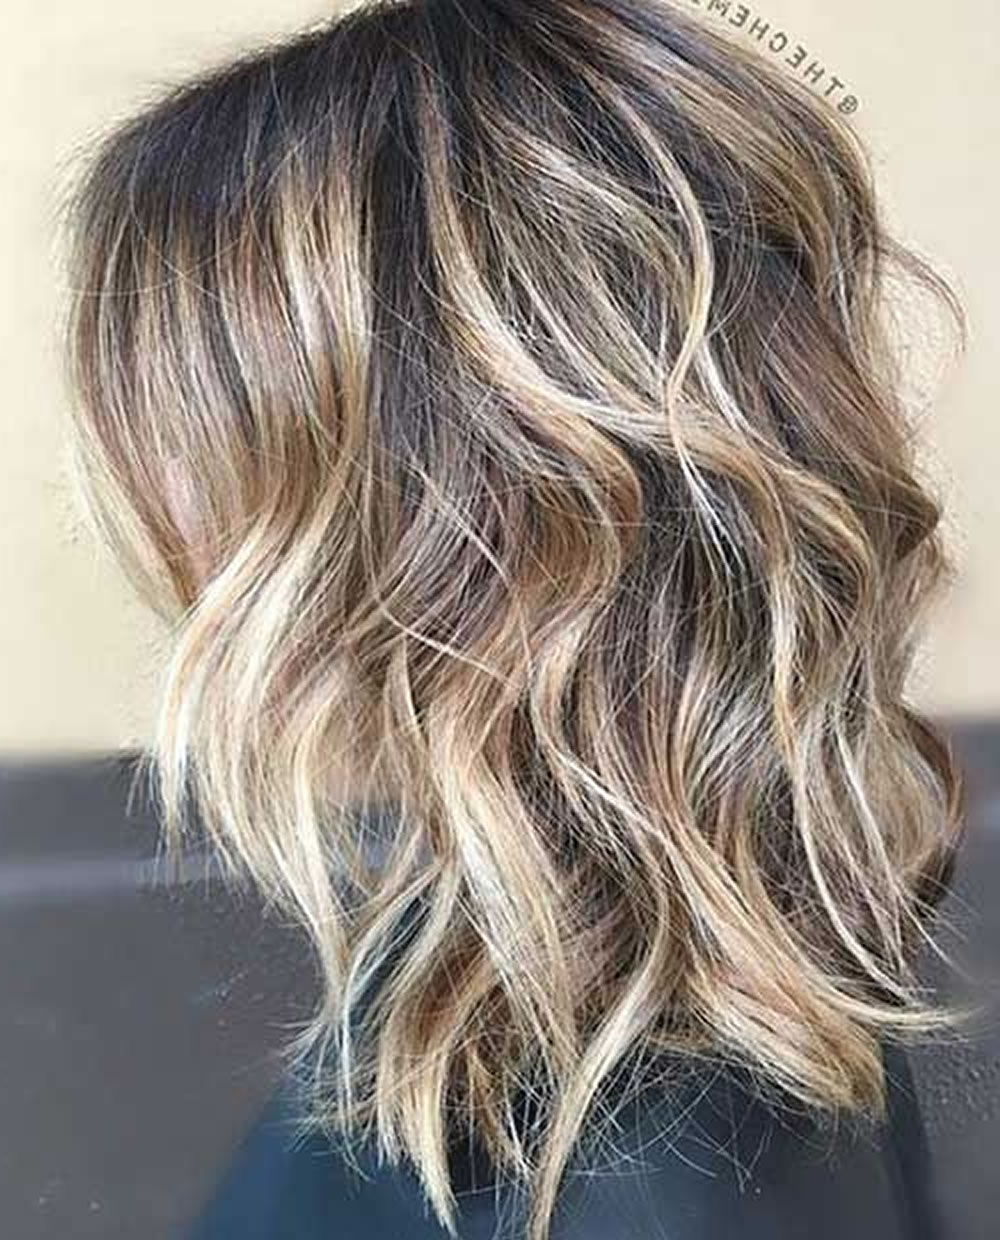 28 Layered Long Bob Hairstyles And Lob Haircuts 2018 – Page 6 Regarding Layered Balayage Bob Hairstyles (View 5 of 20)